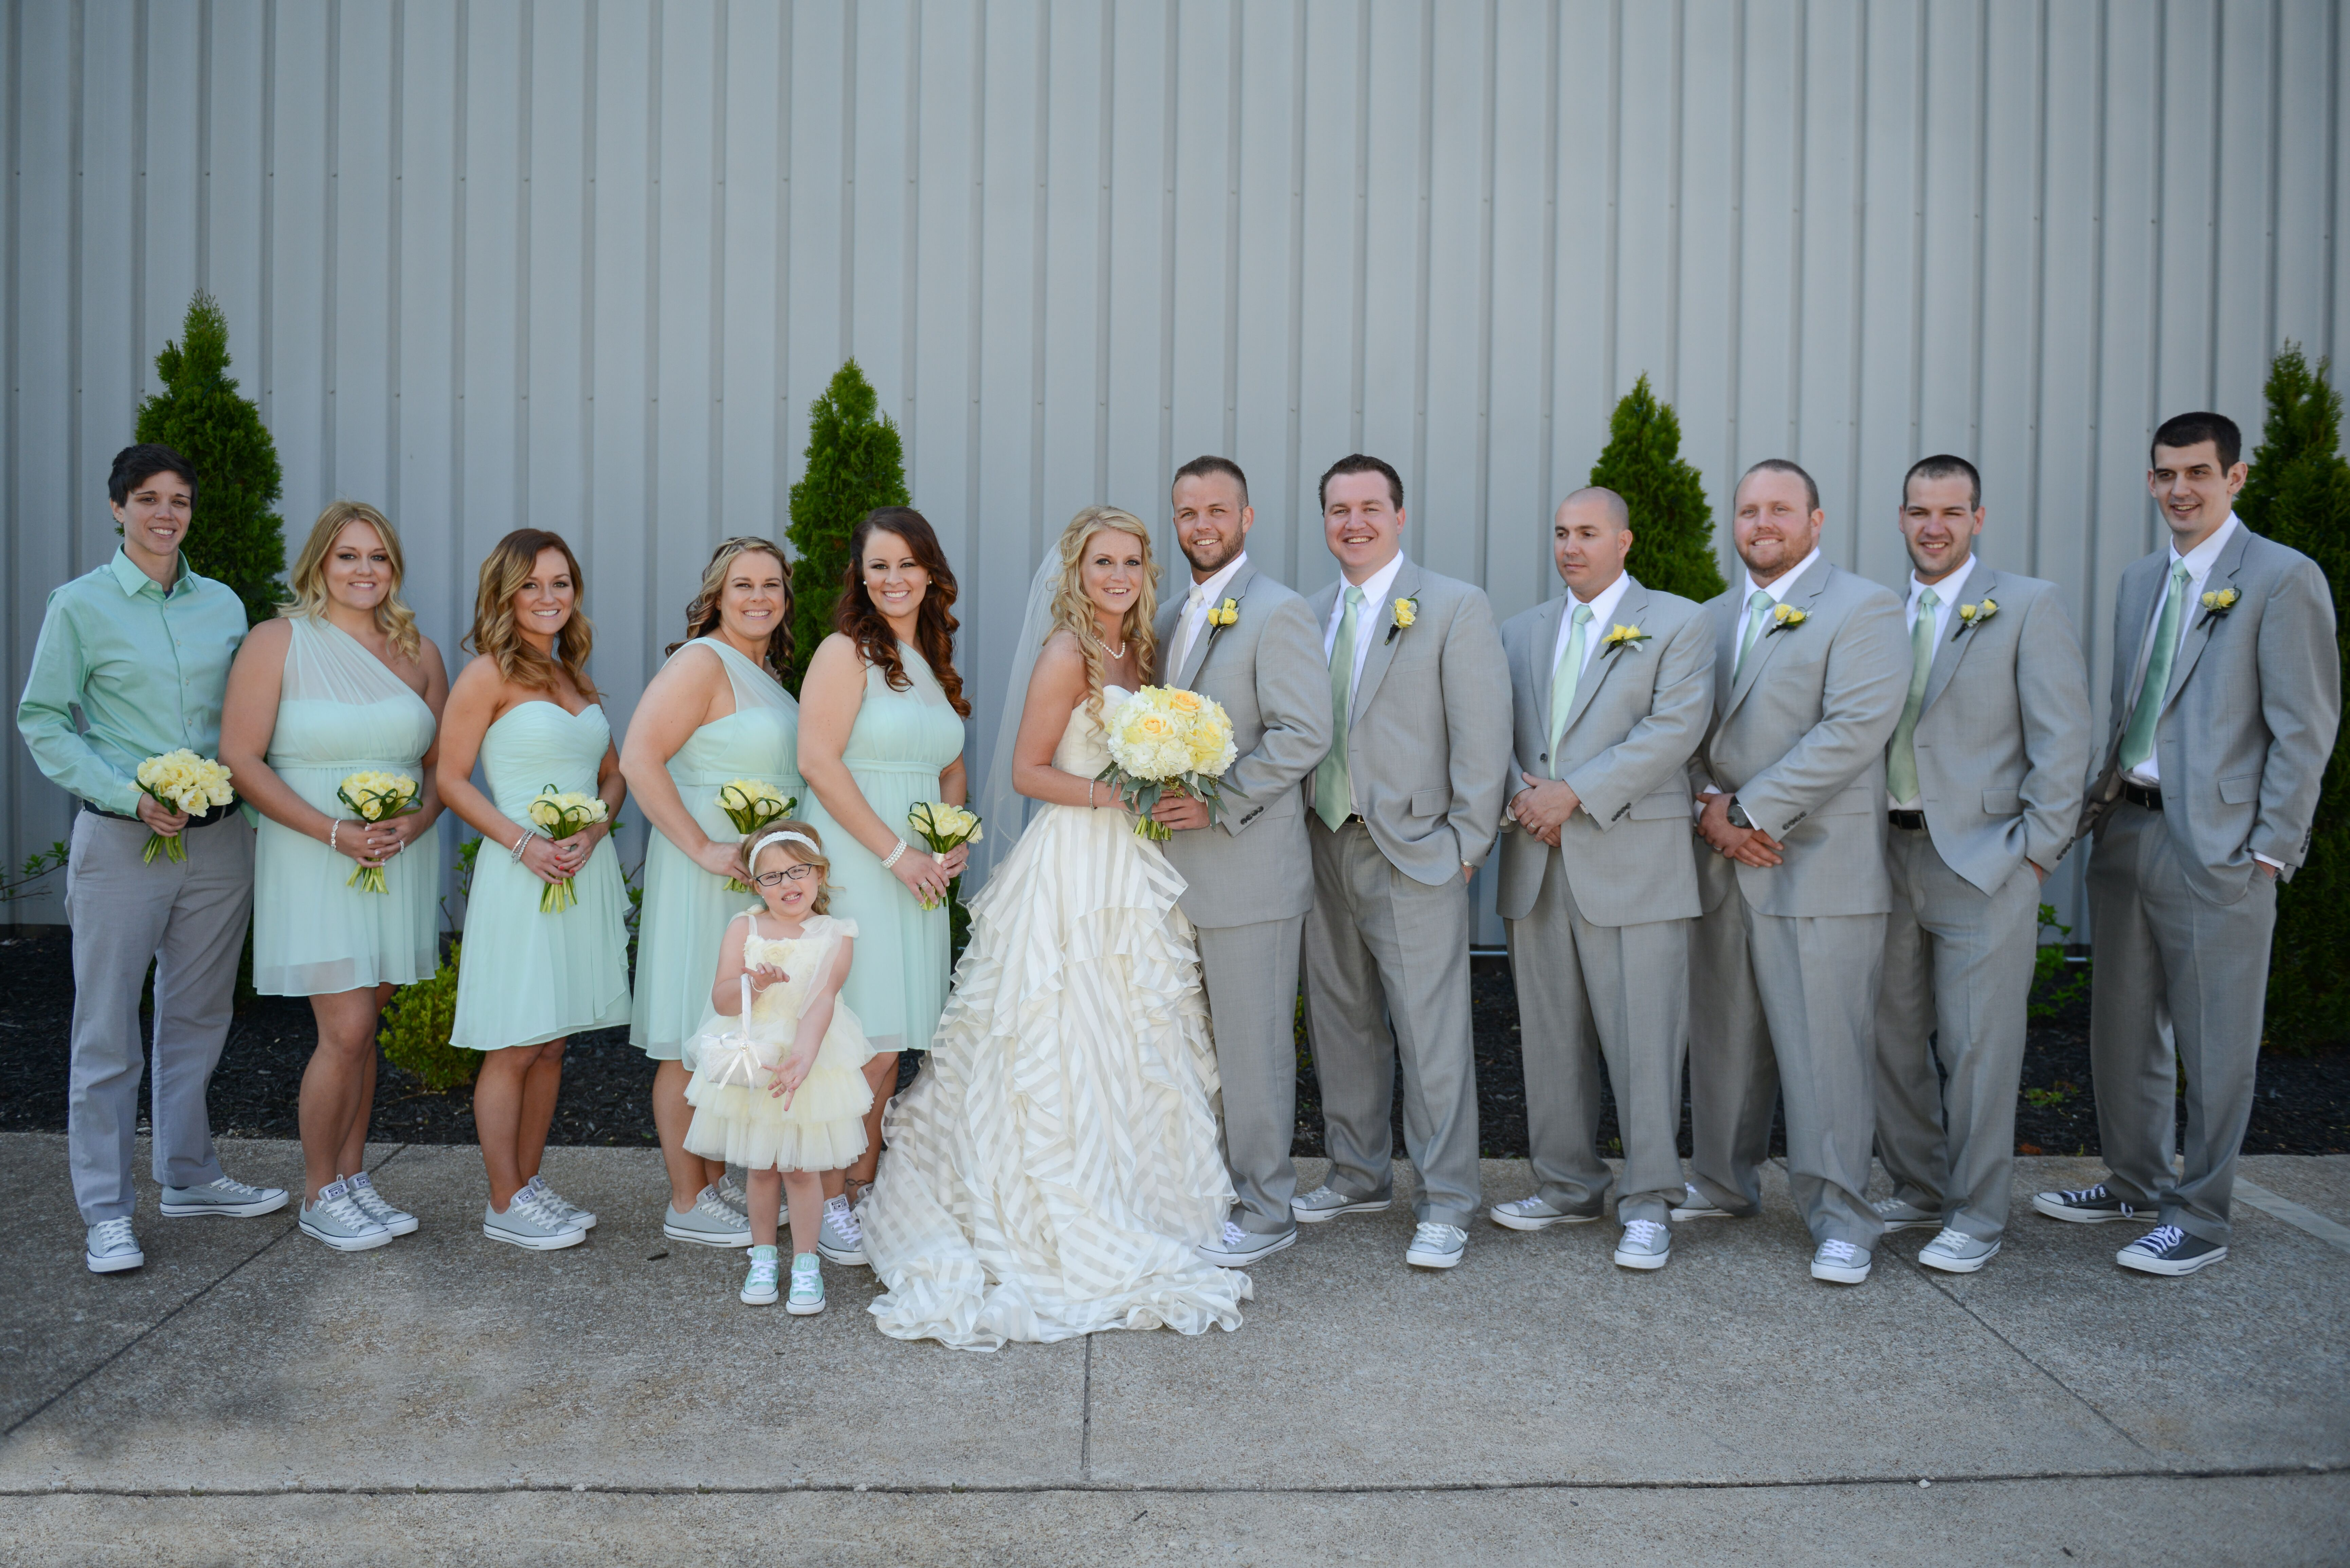 mint and gray wedding party with converse shoes